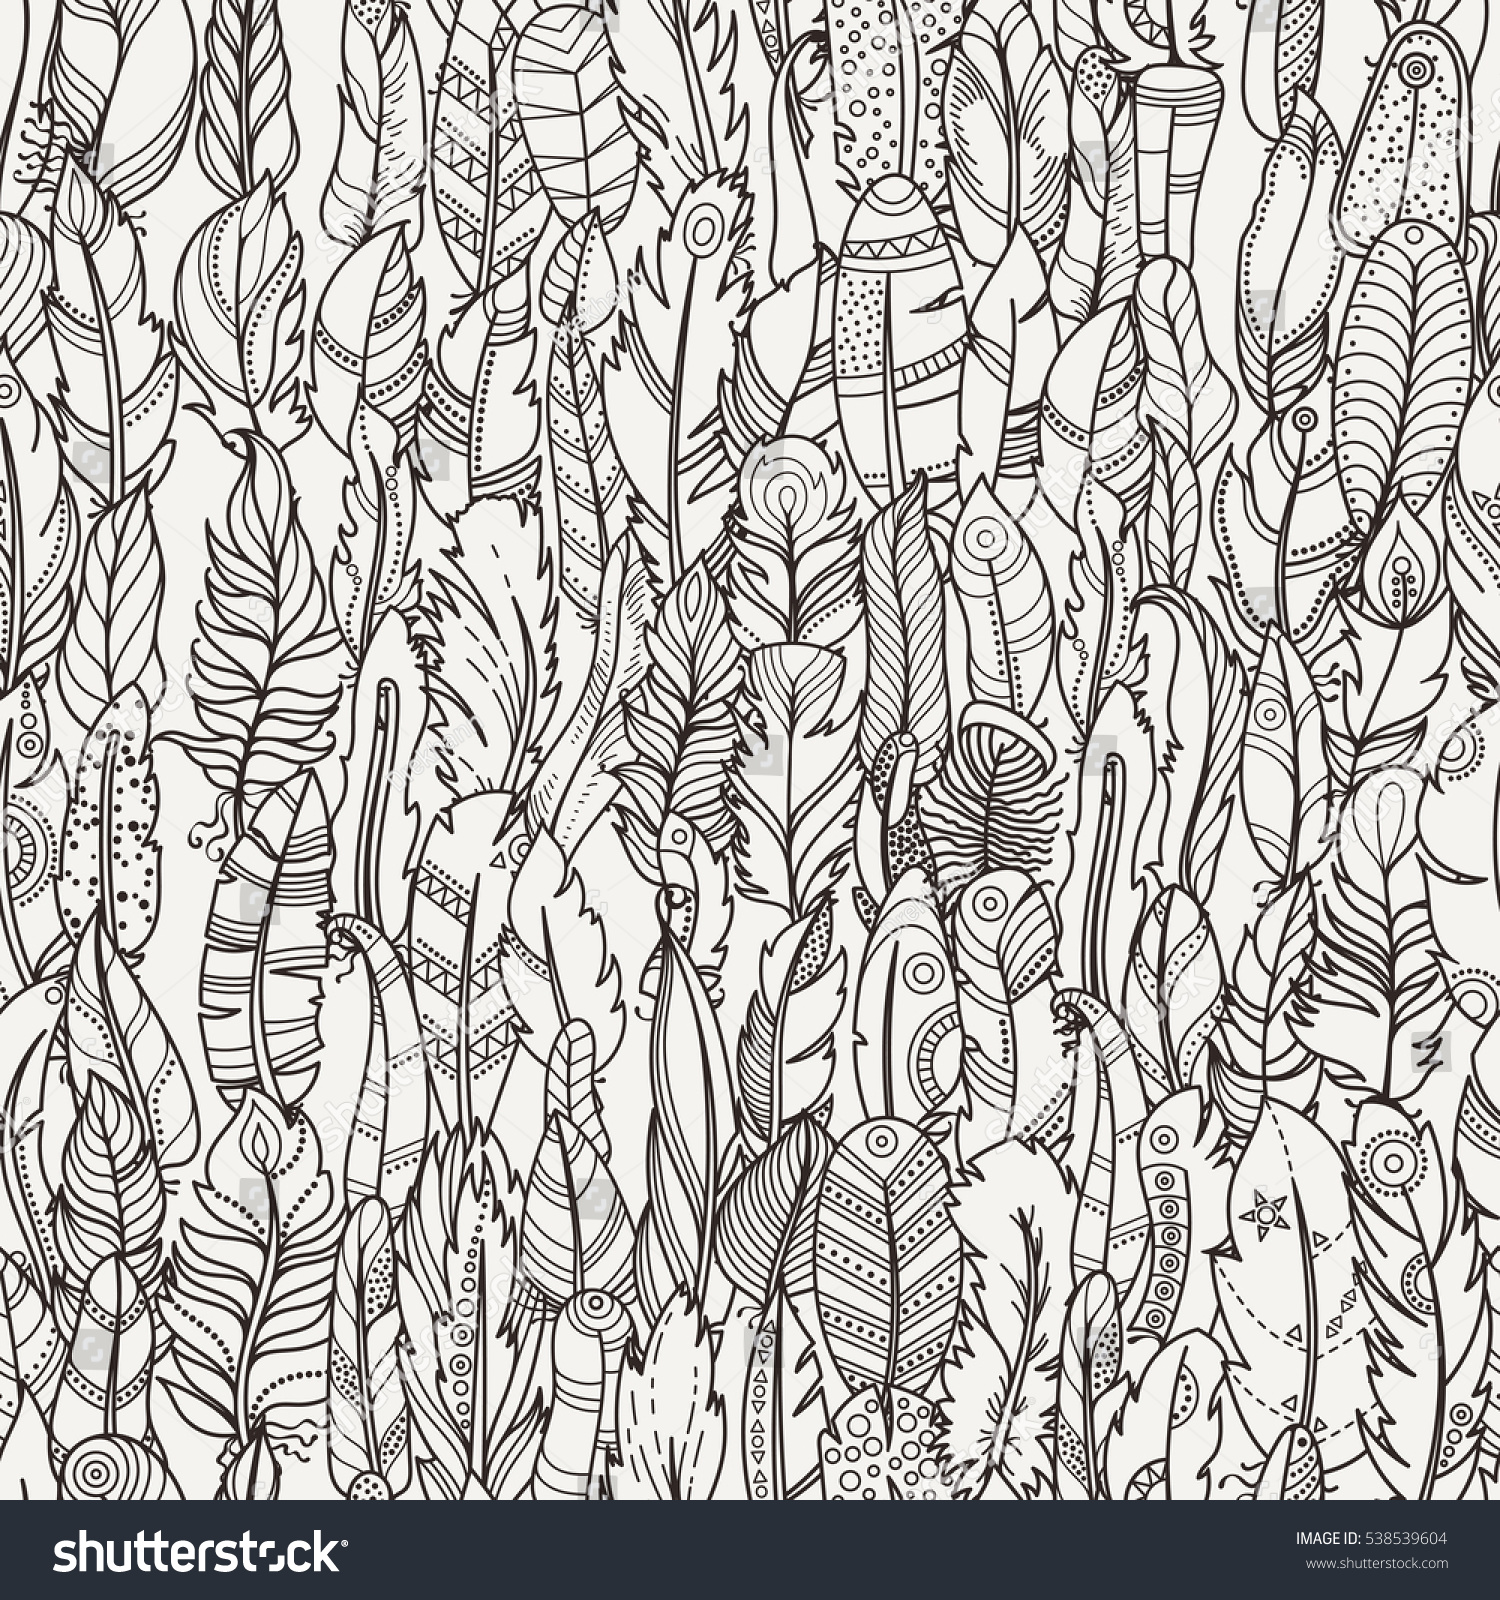 Romantic vector seamless background greeting card wallpaper vector art - Seamless Pattern With Random Fantasy Feathers Vector Illustration For Wallpaper Web Page Background